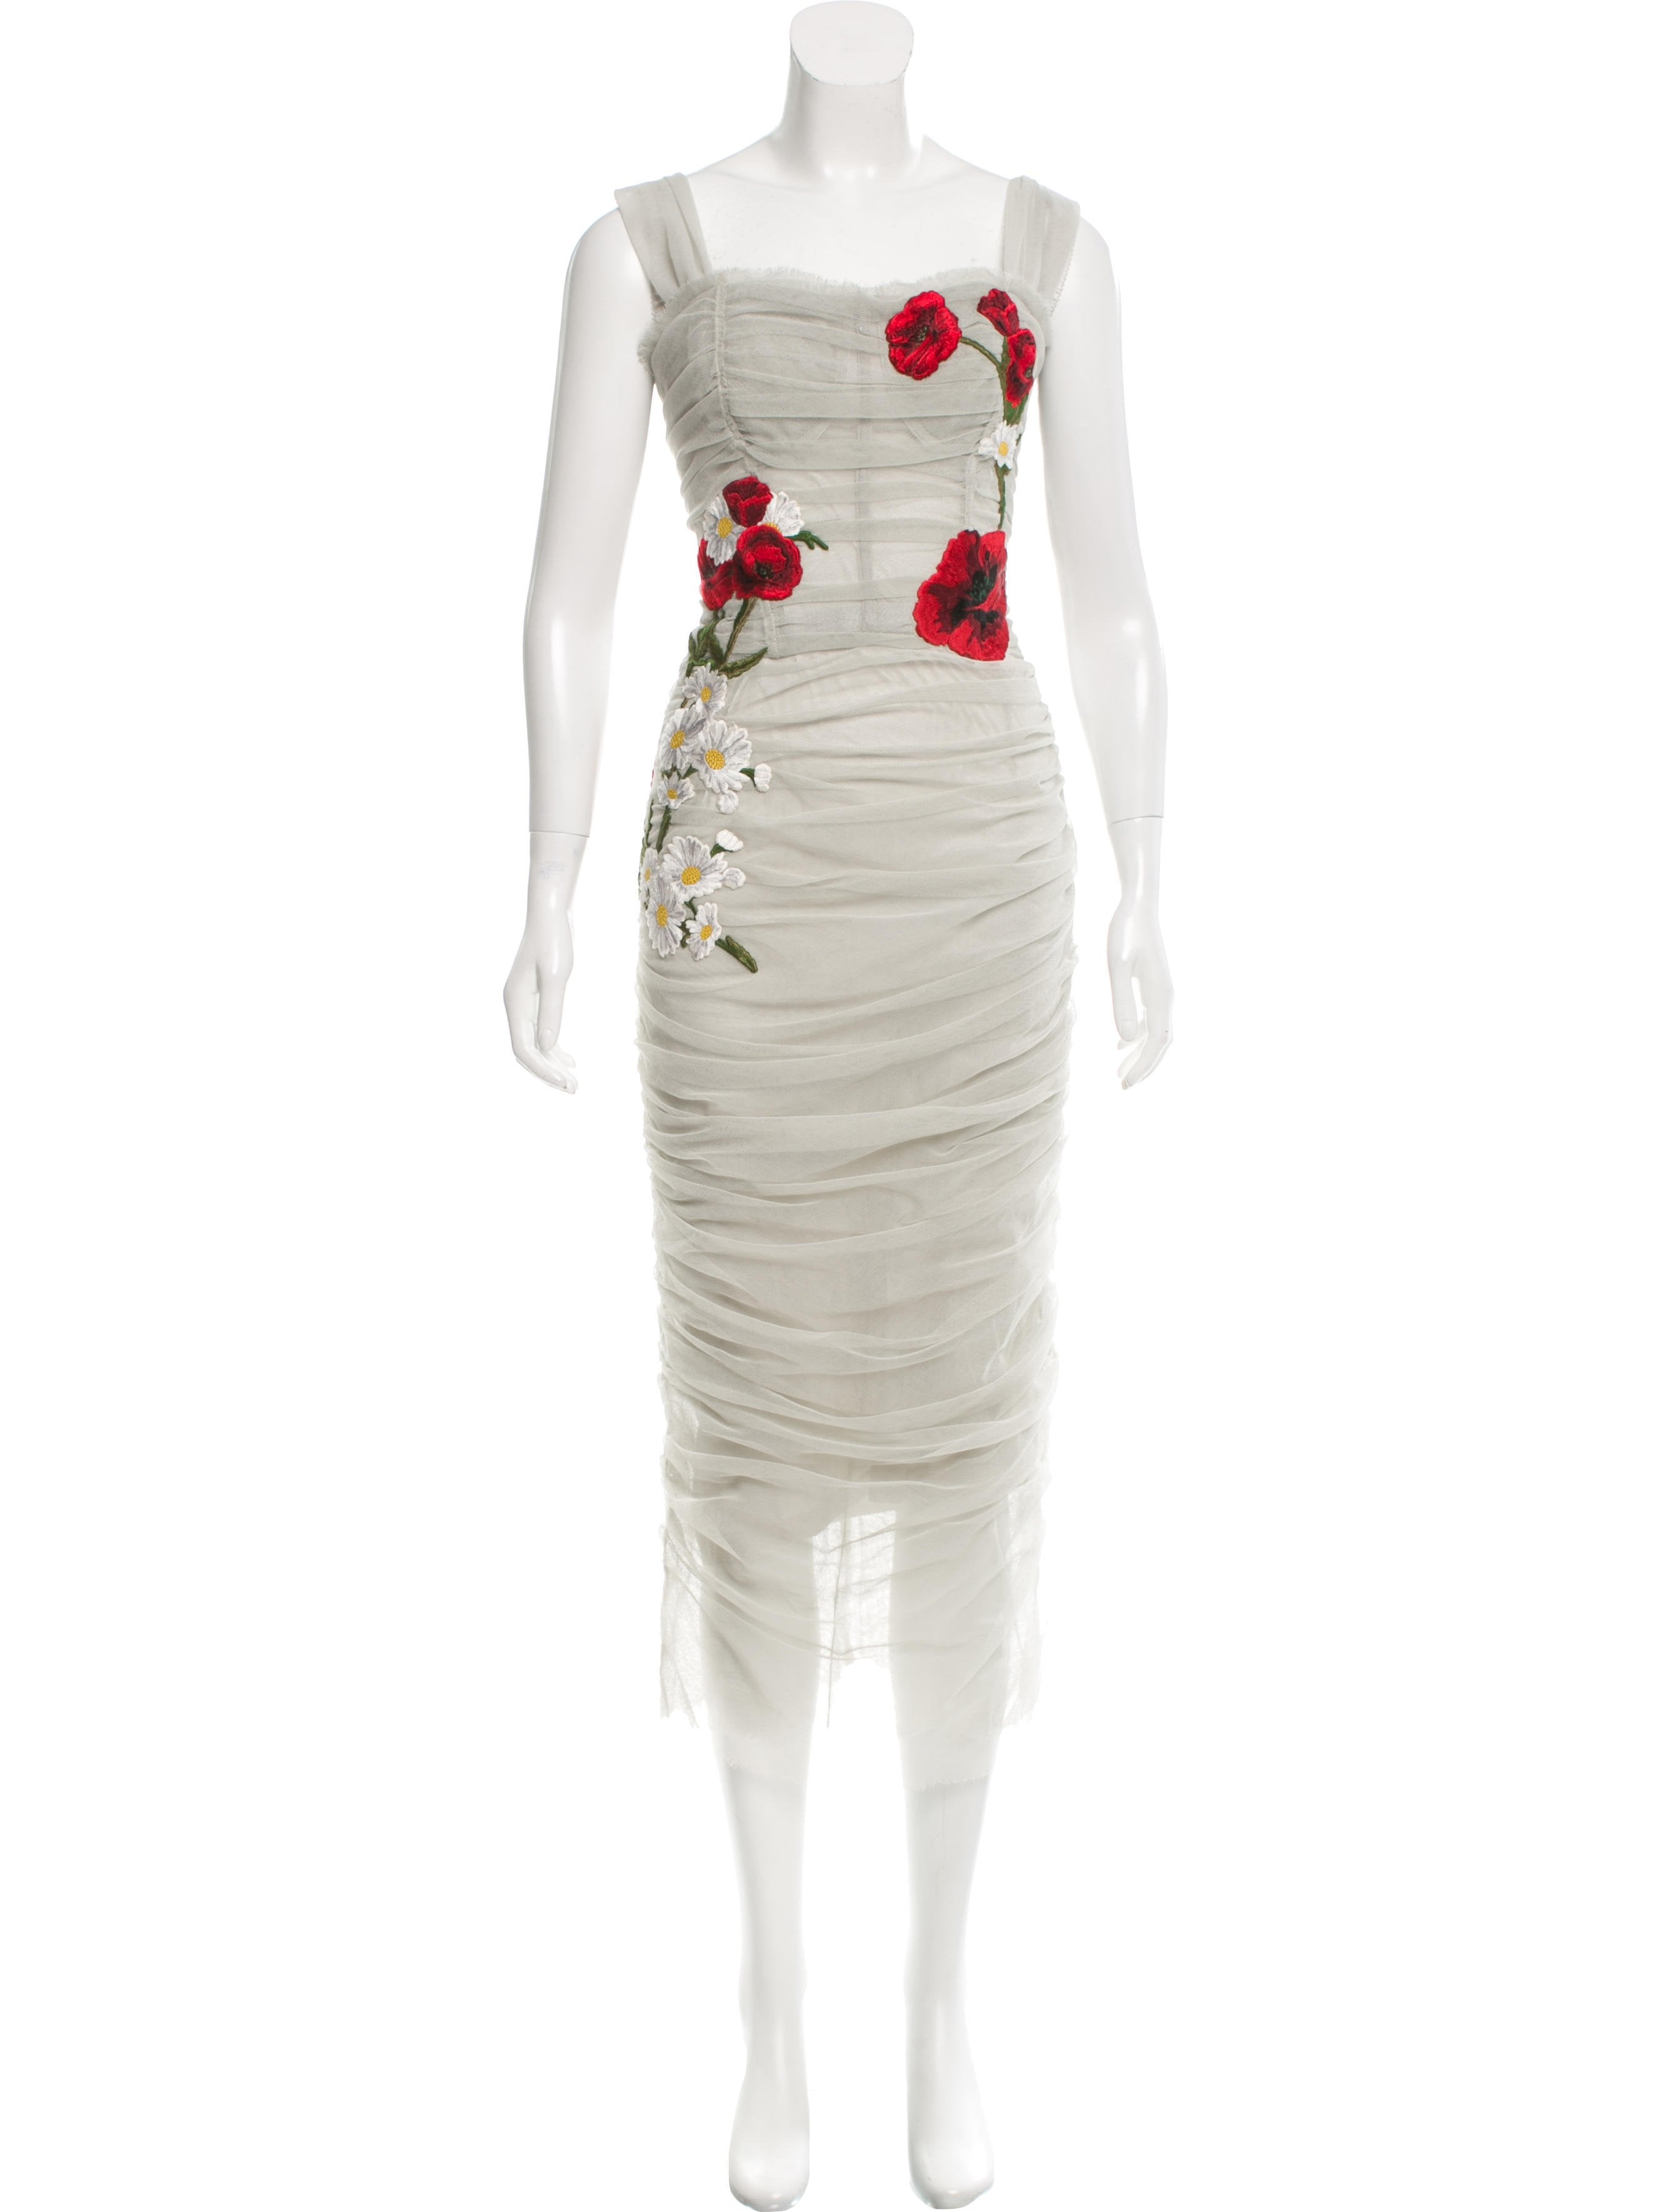 Dolce gabbana rose embroidered tulle dress w tags